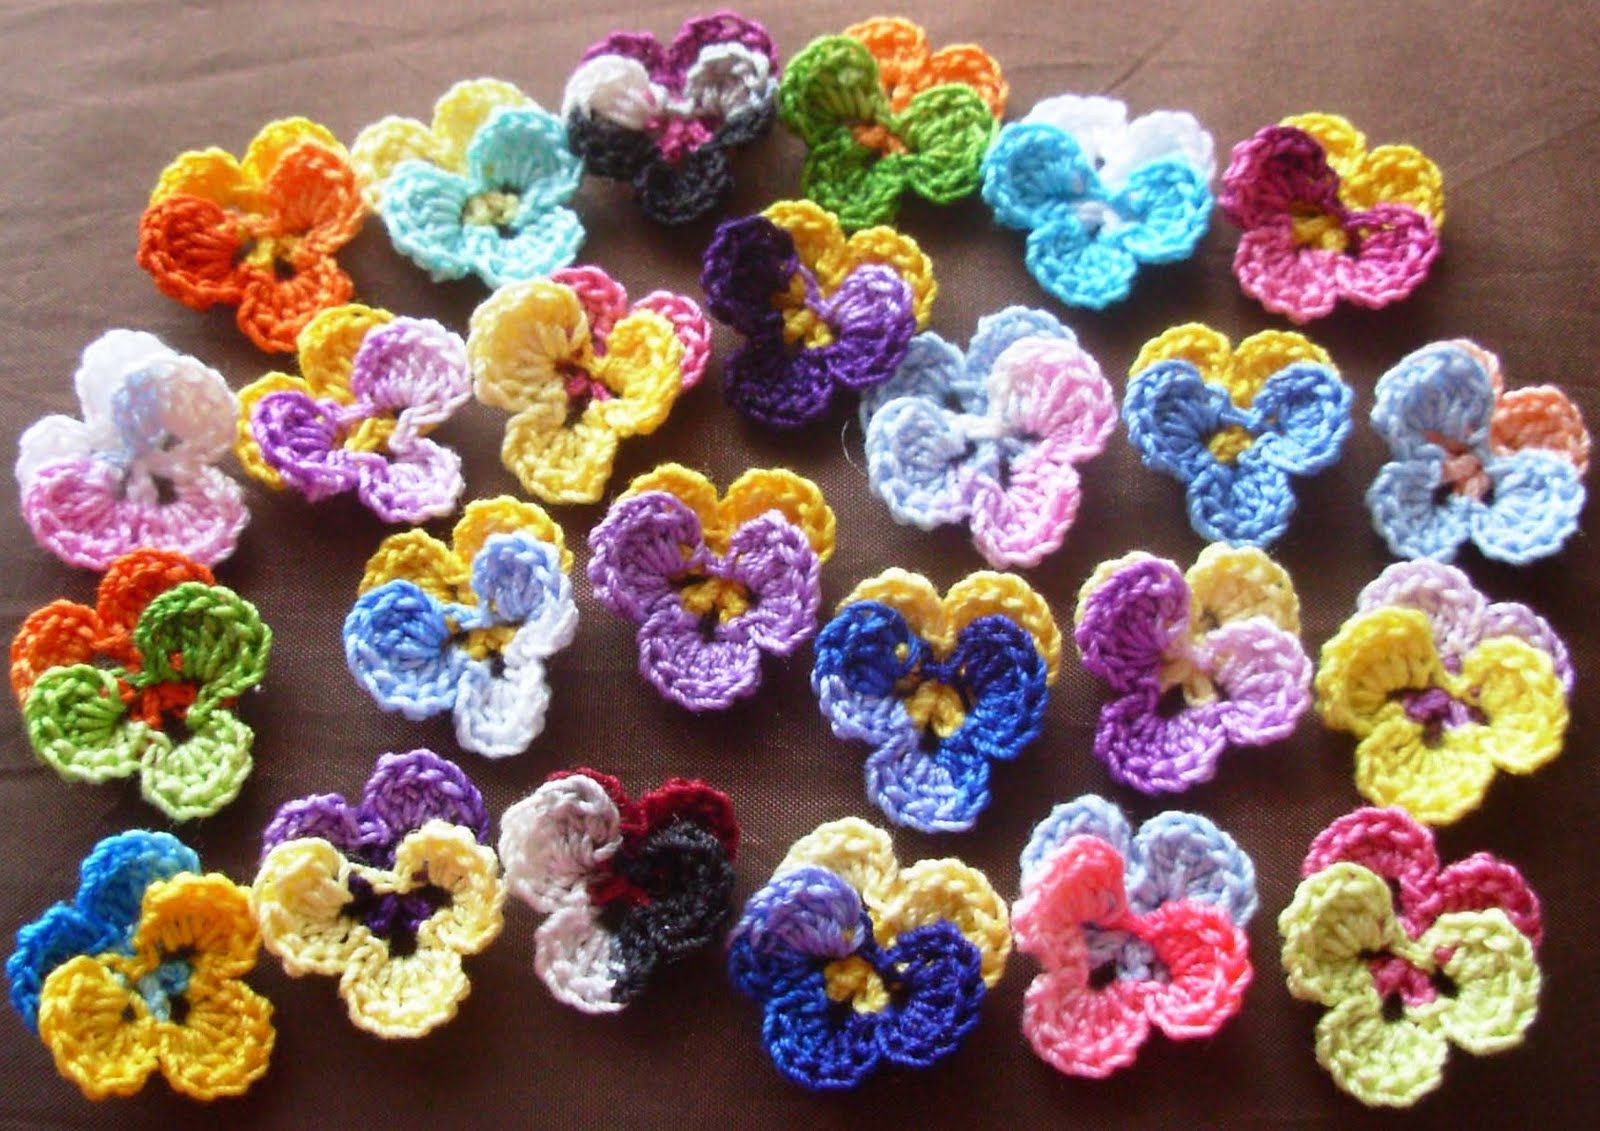 All Crochet : Crochet Flowers: Ideas for using crochet flowers in projects